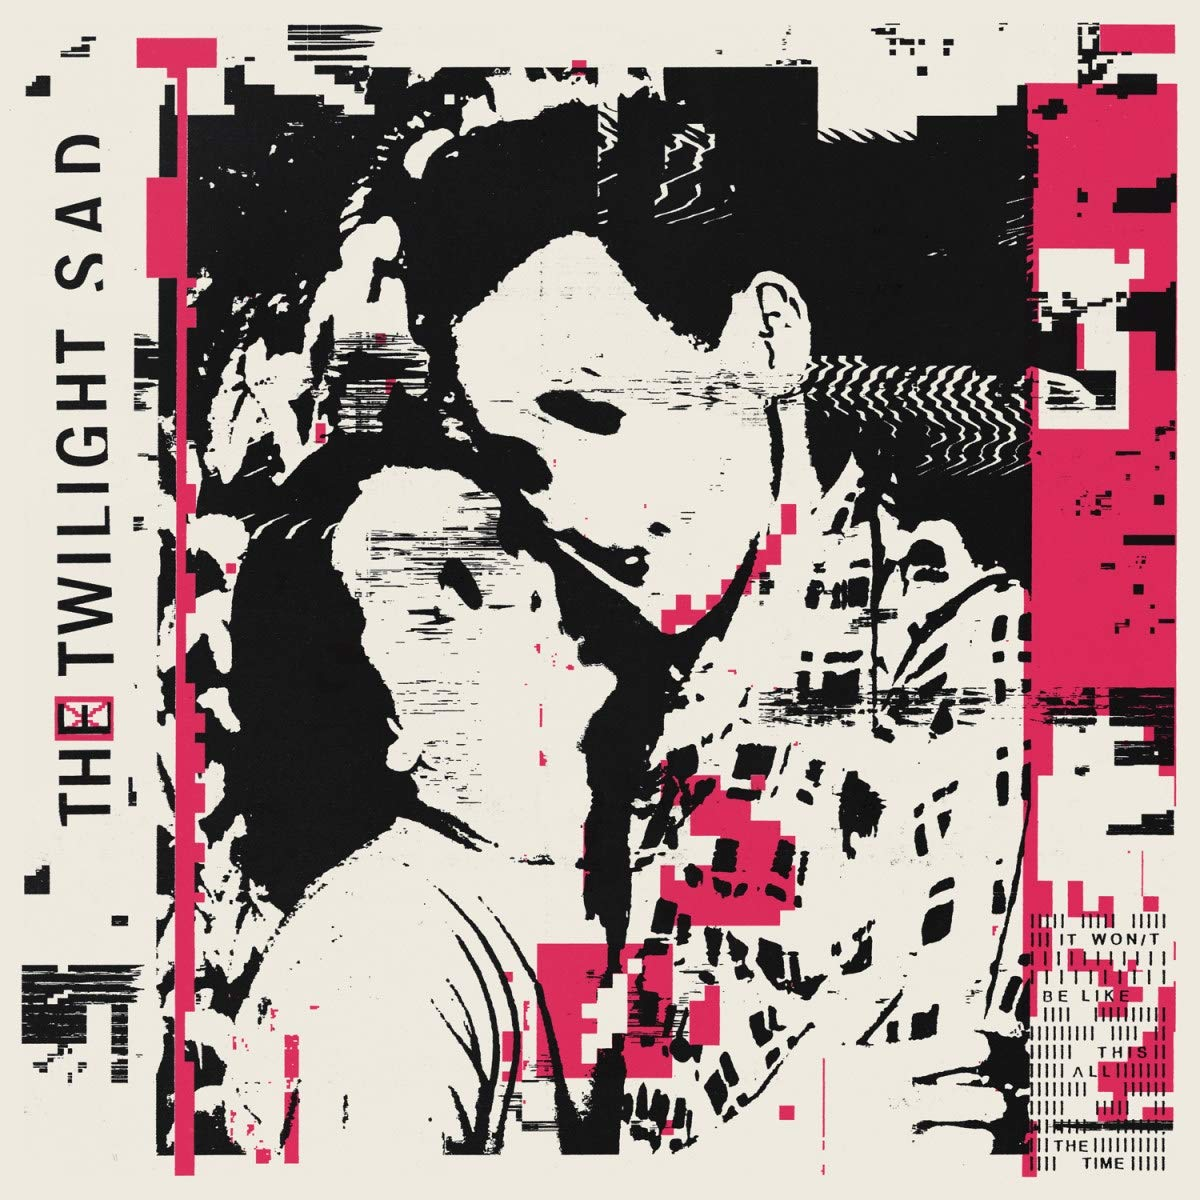 CD : The Twilight Sad - It Won't Be Like This All The Time (CD)